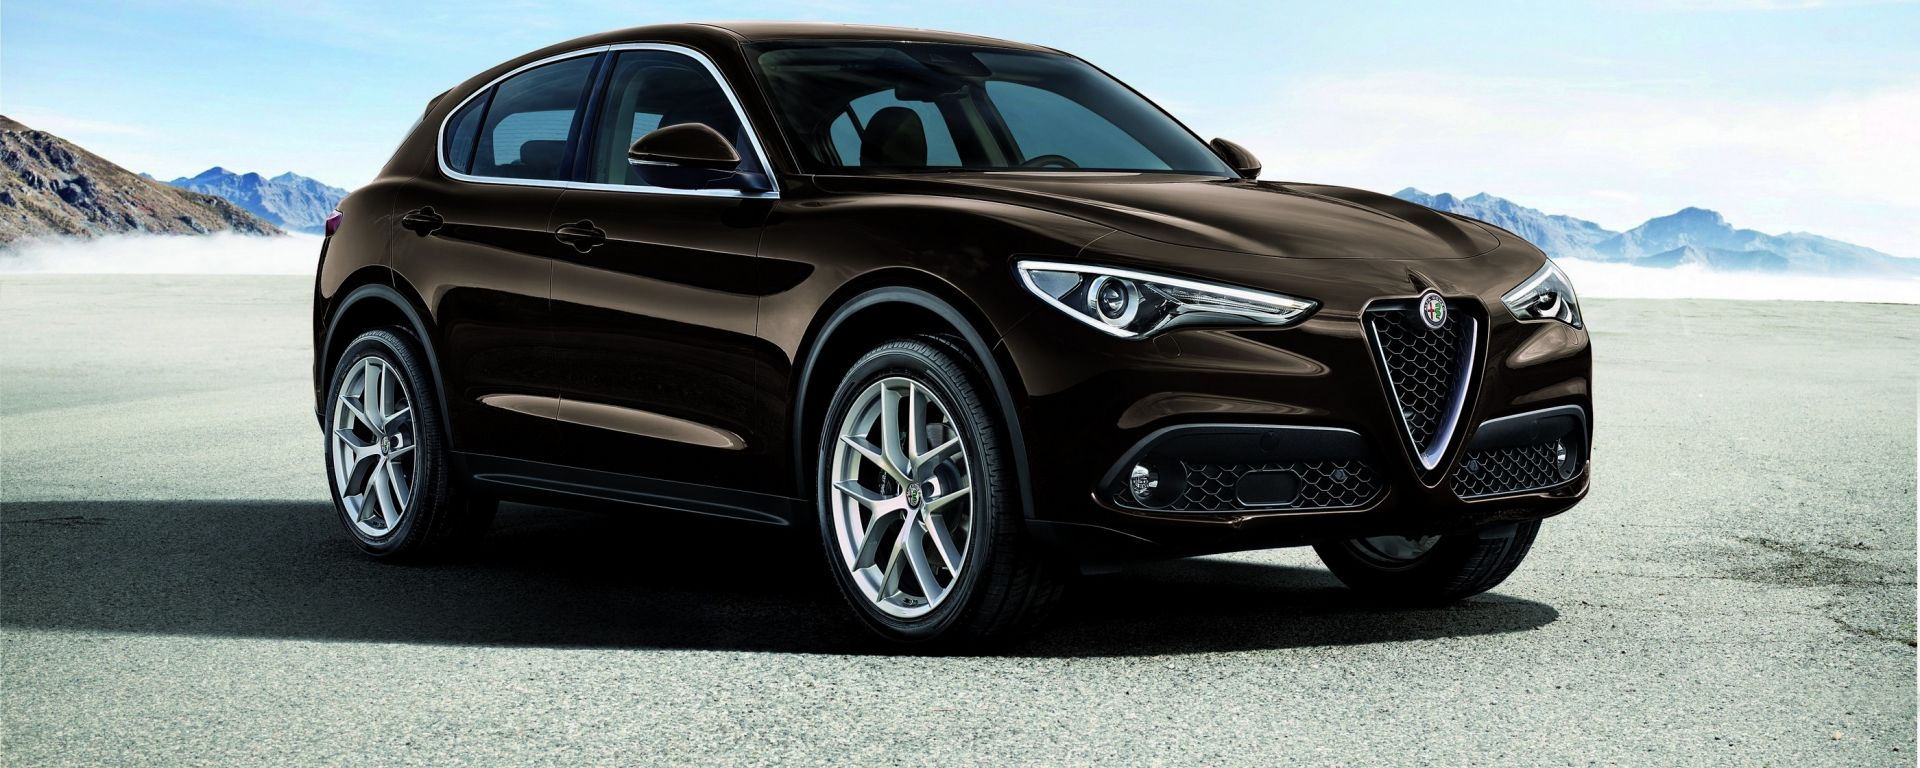 alfa romeo q4 stelvio idea di immagine auto. Black Bedroom Furniture Sets. Home Design Ideas